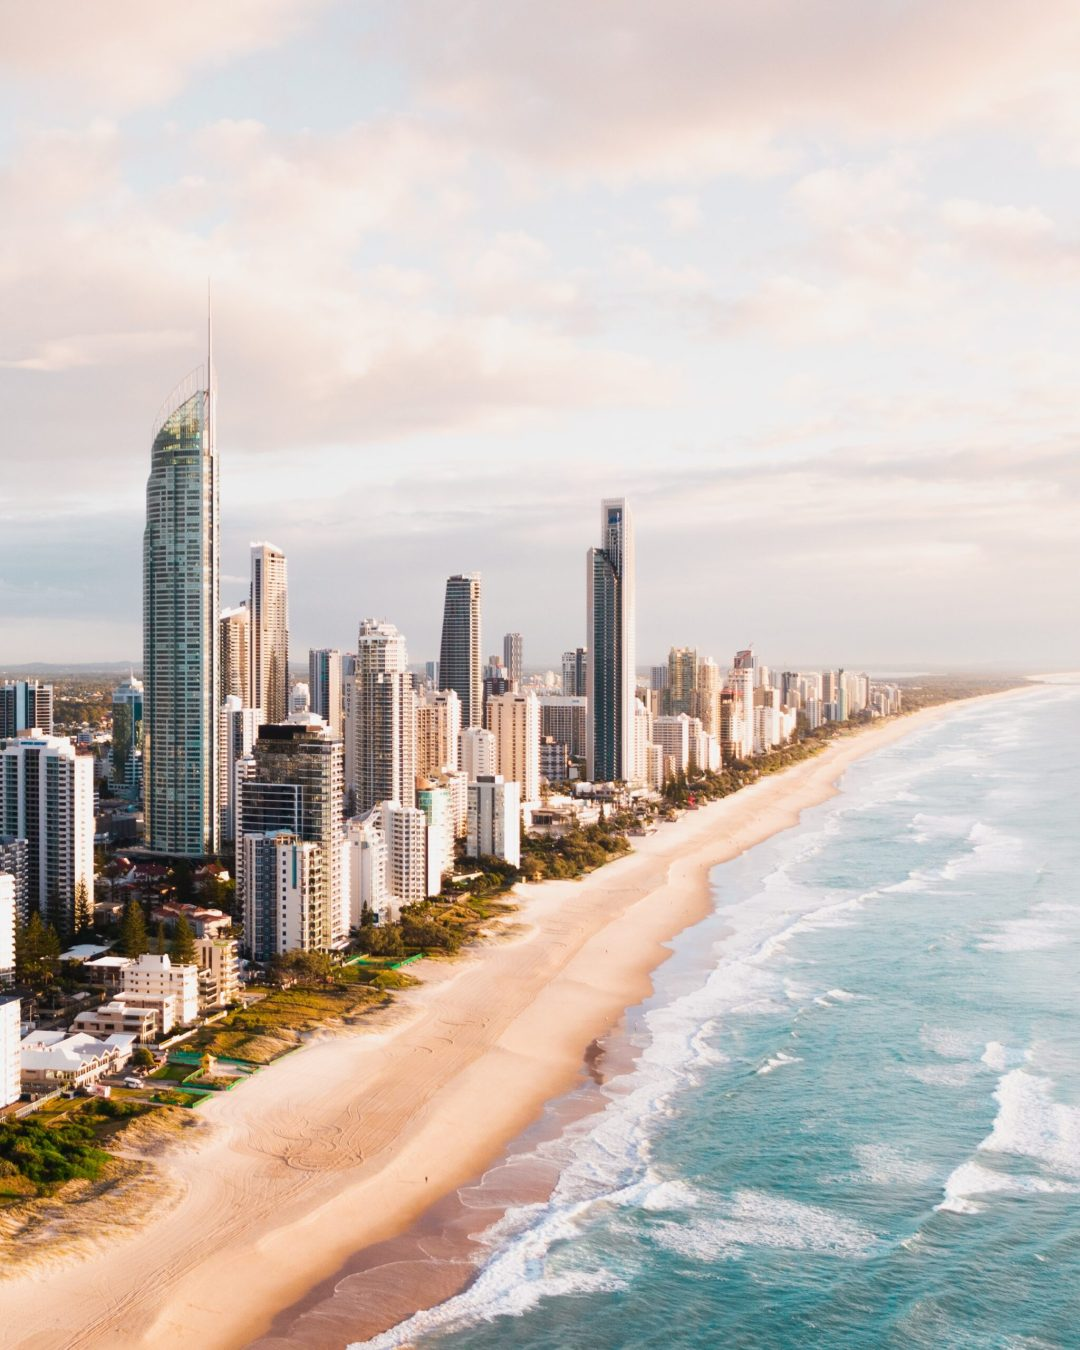 Beach and buildings in Gold Coast